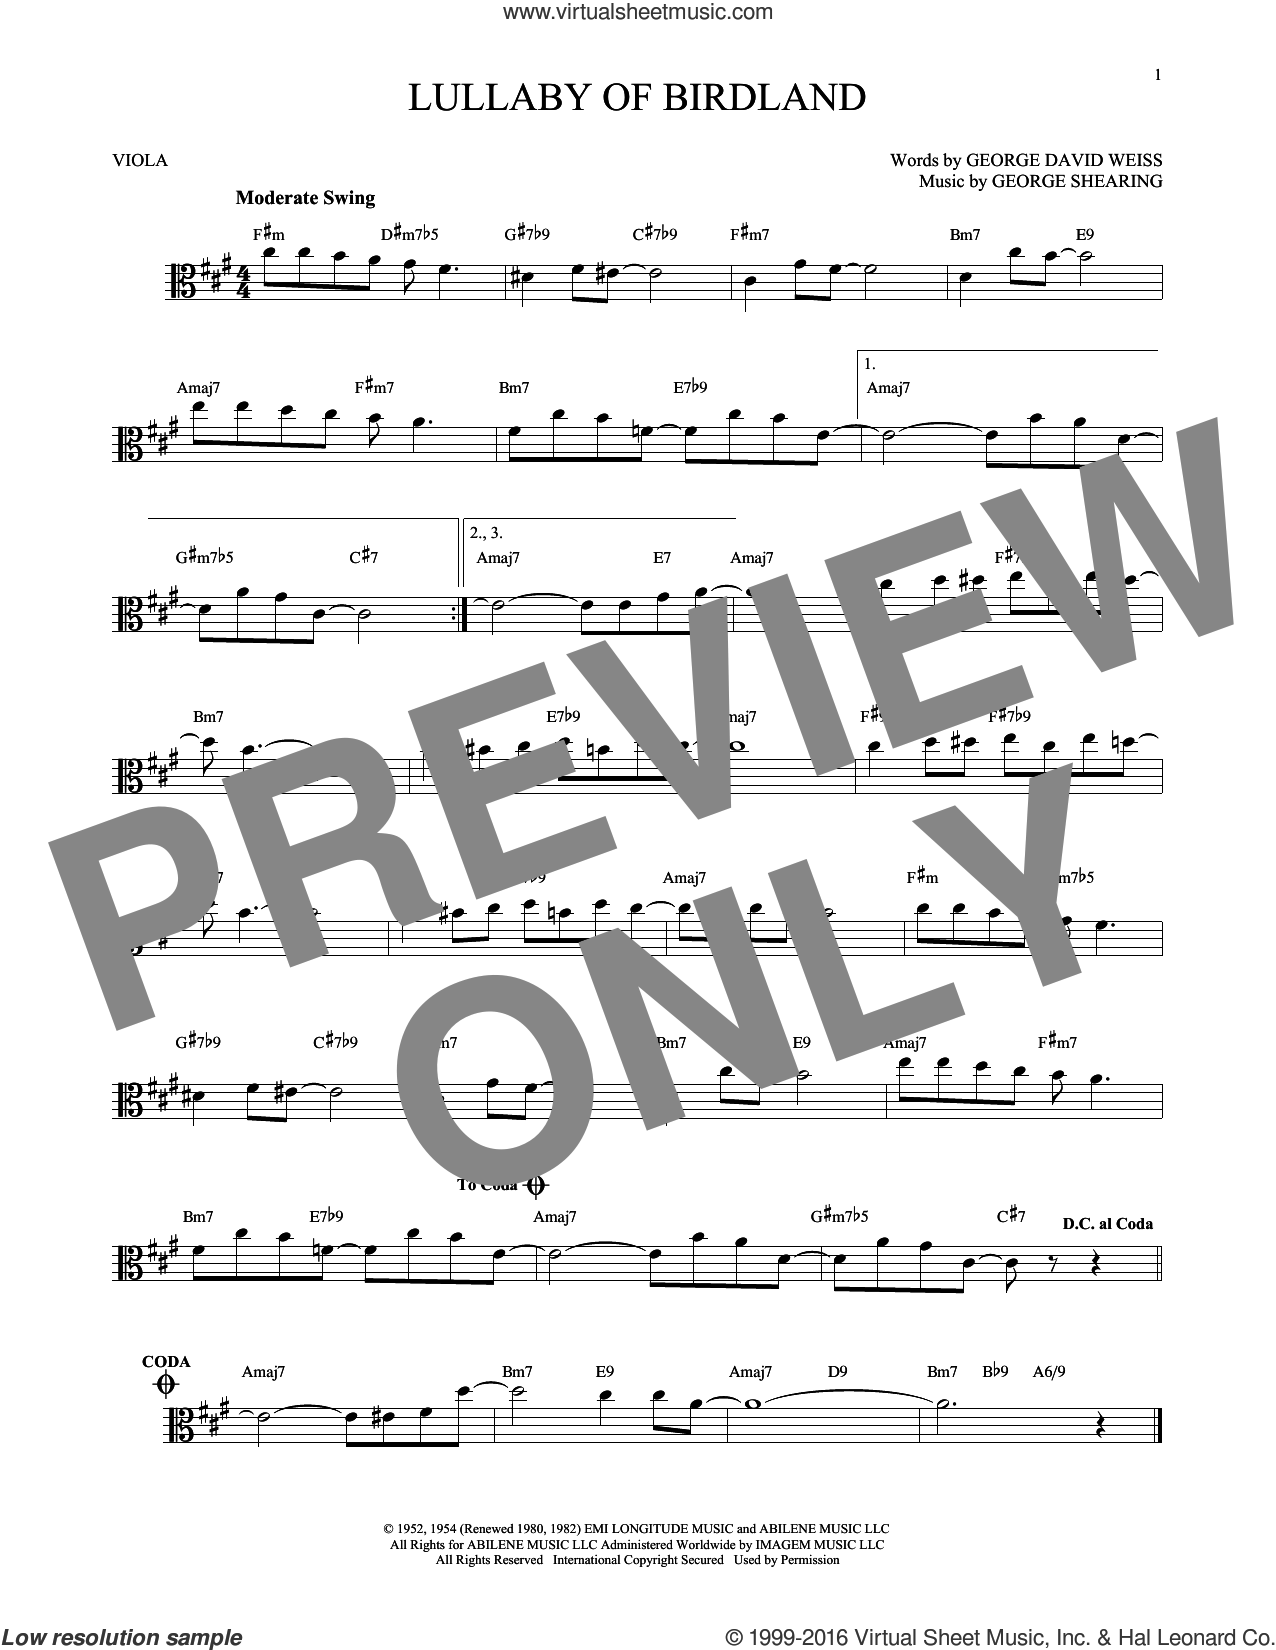 Lullaby Of Birdland sheet music for viola solo by George Shearing and George David Weiss. Score Image Preview.